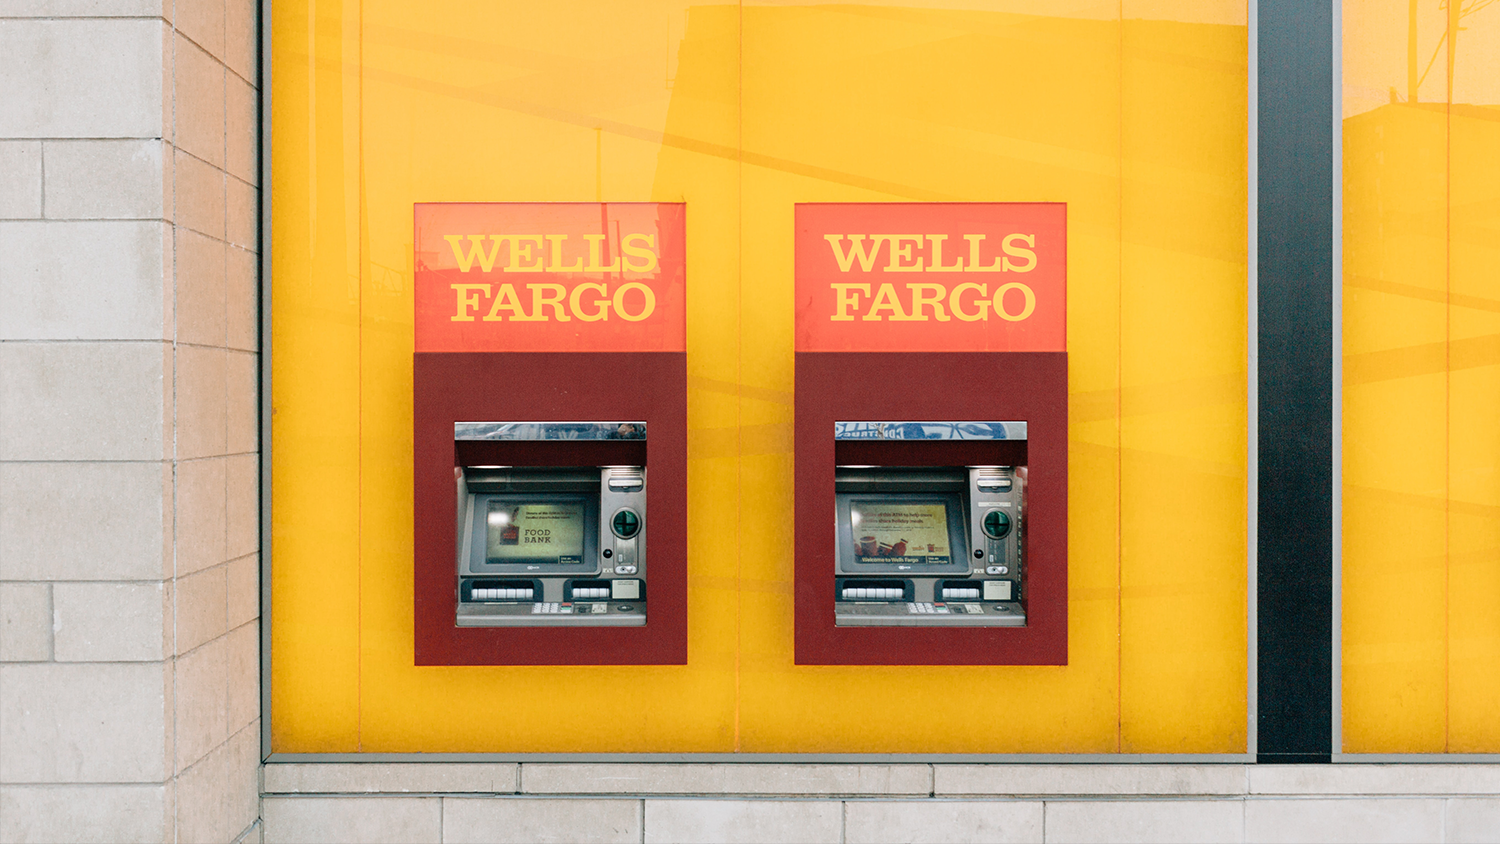 wellsfargoatm-blog-020620